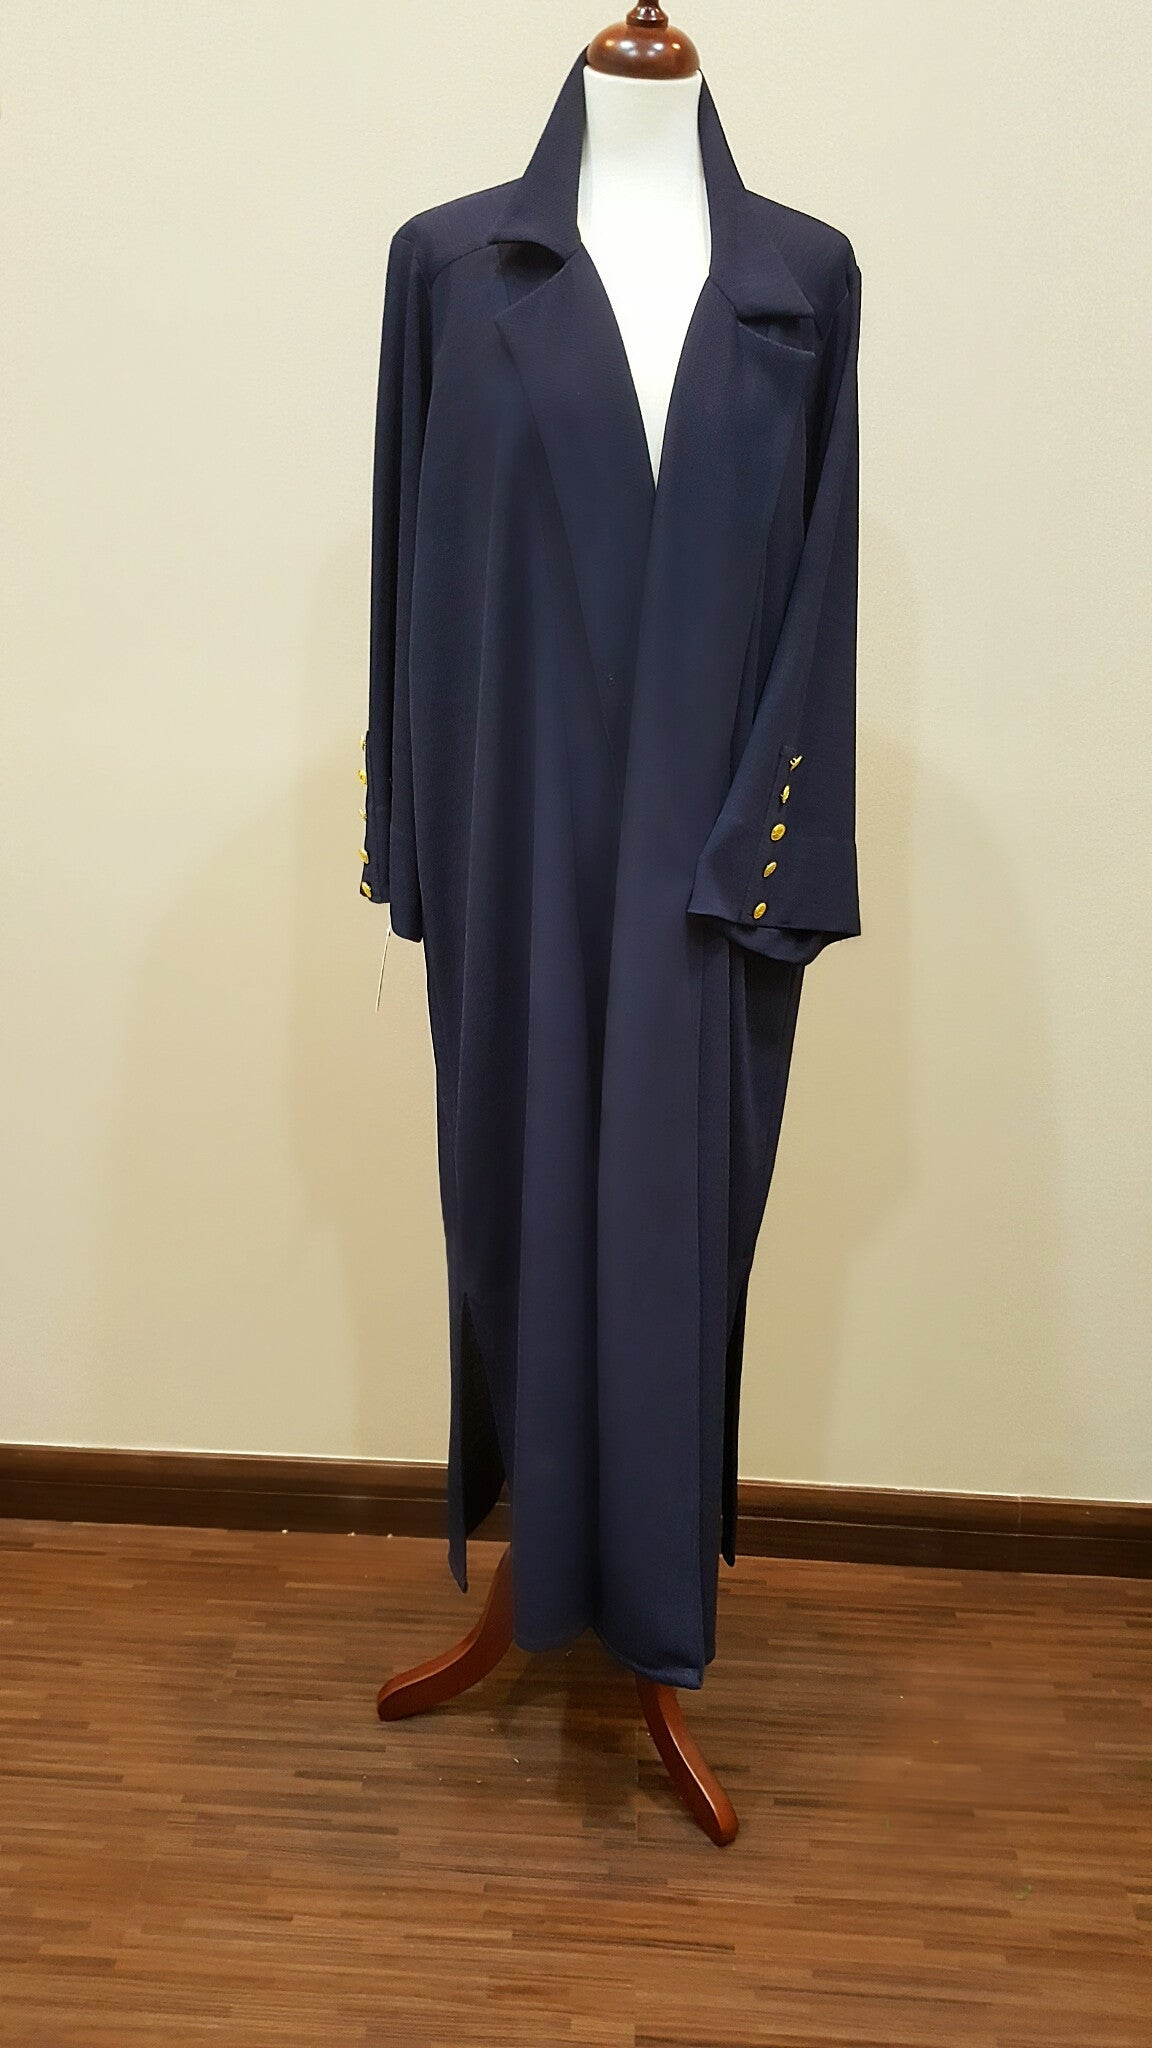 Jersey Blazer Inspired Abaya with Gold Buttons